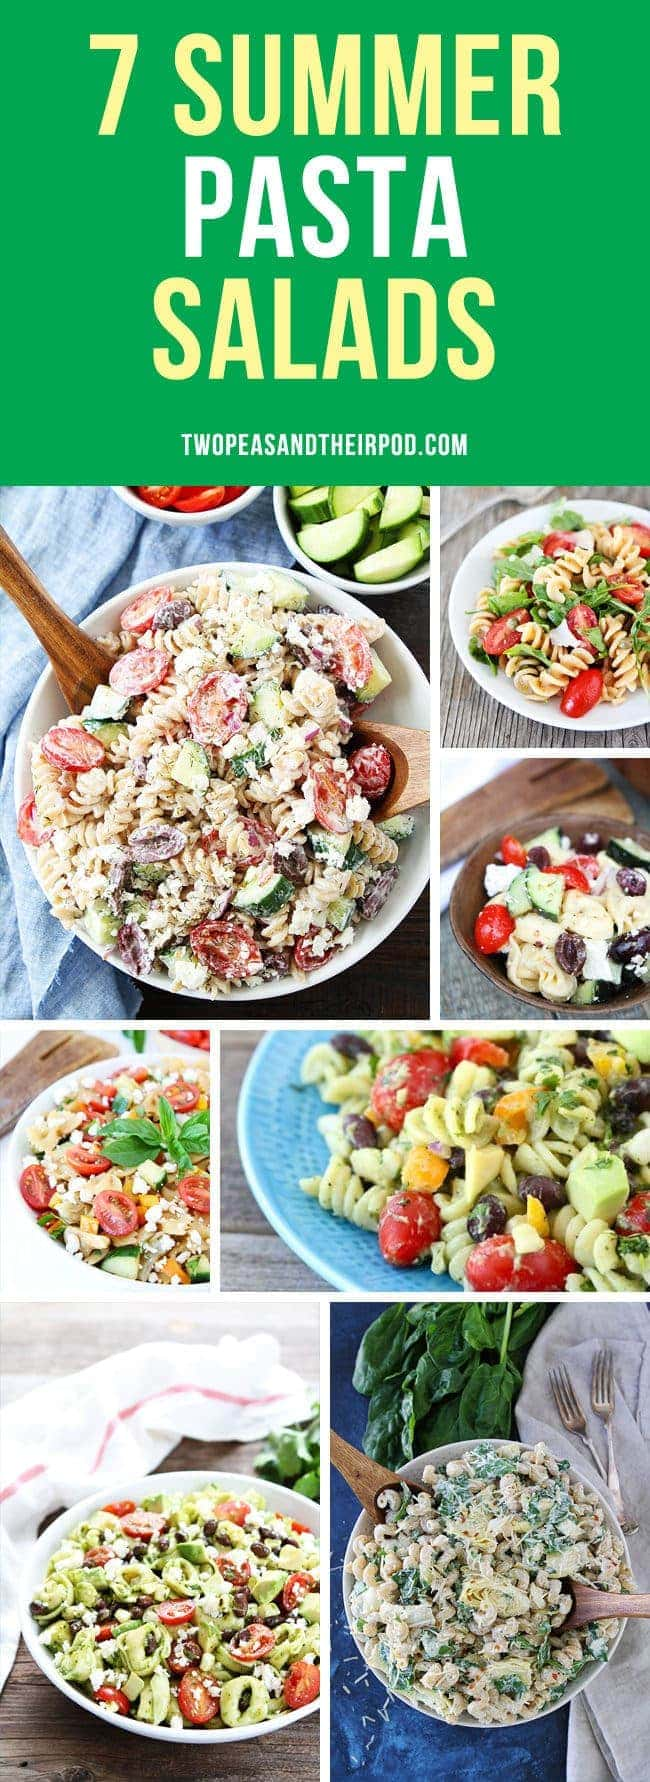 7 Summer Pasta Salad Recipes that are perfect side dishes for barbecues, picnics, and potlucks!